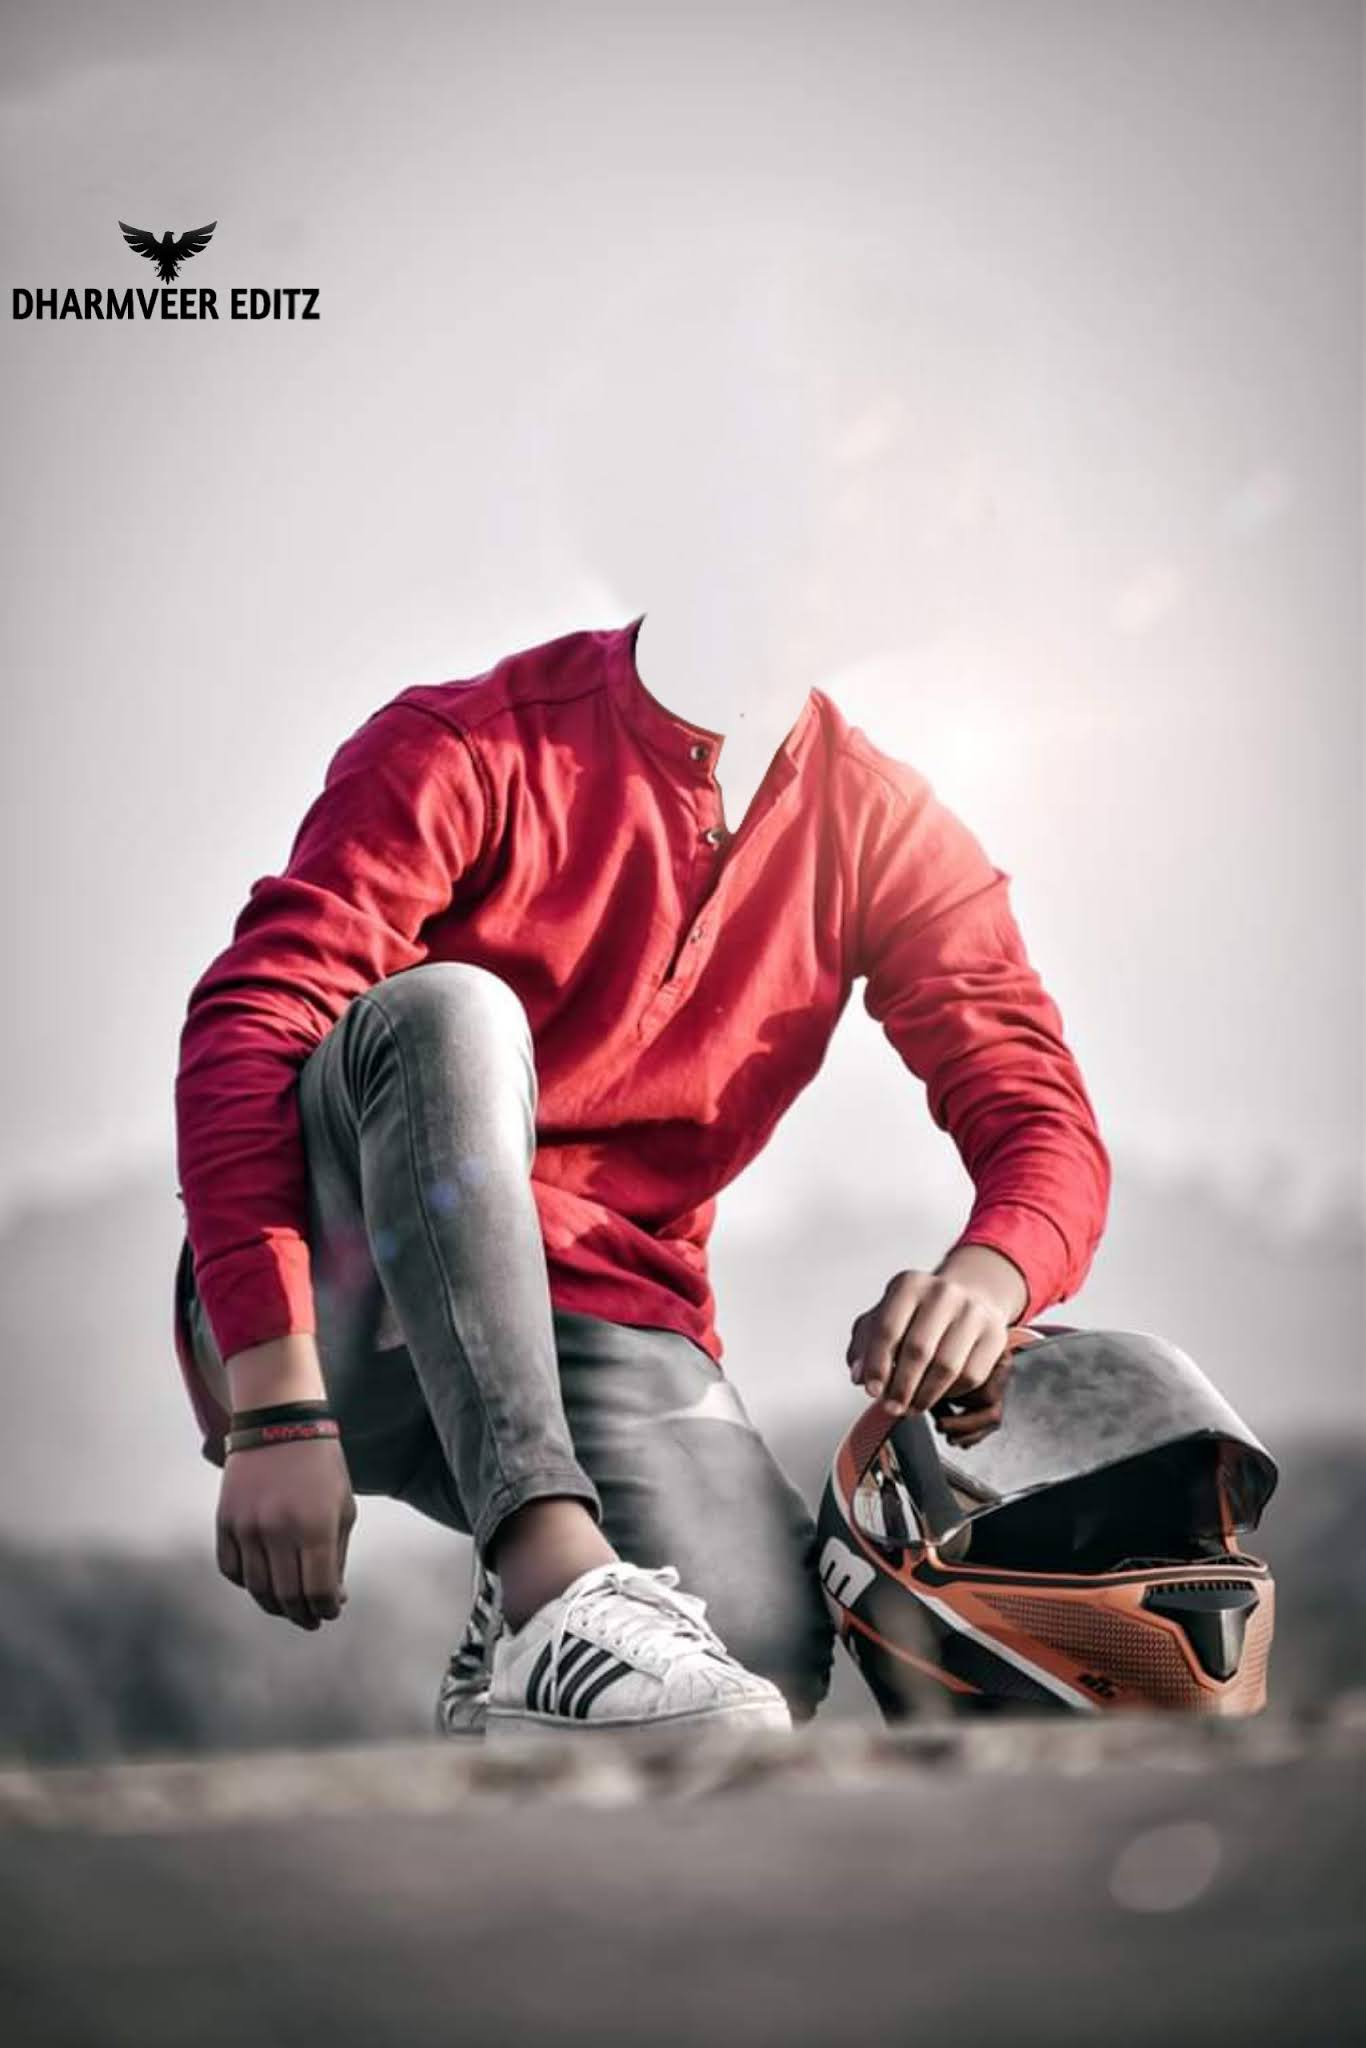 Cute & Stylish Boys Body Hd Background Without Face for Editing 2021